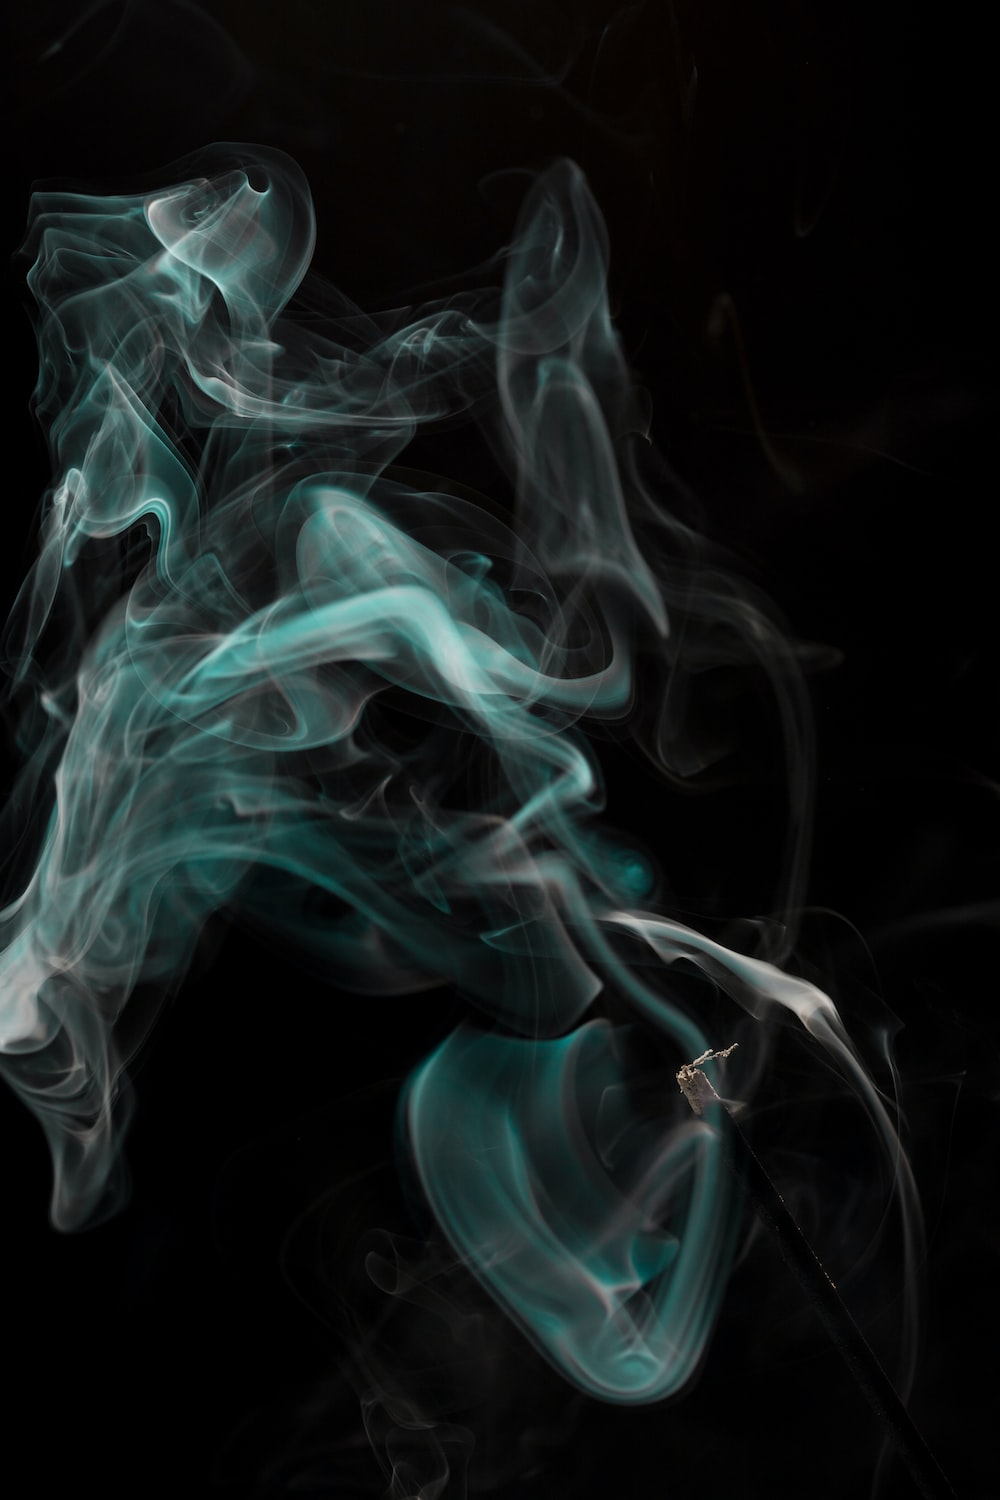 20 smoke images hd download free pictures on unsplash - No smoking wallpaper download ...